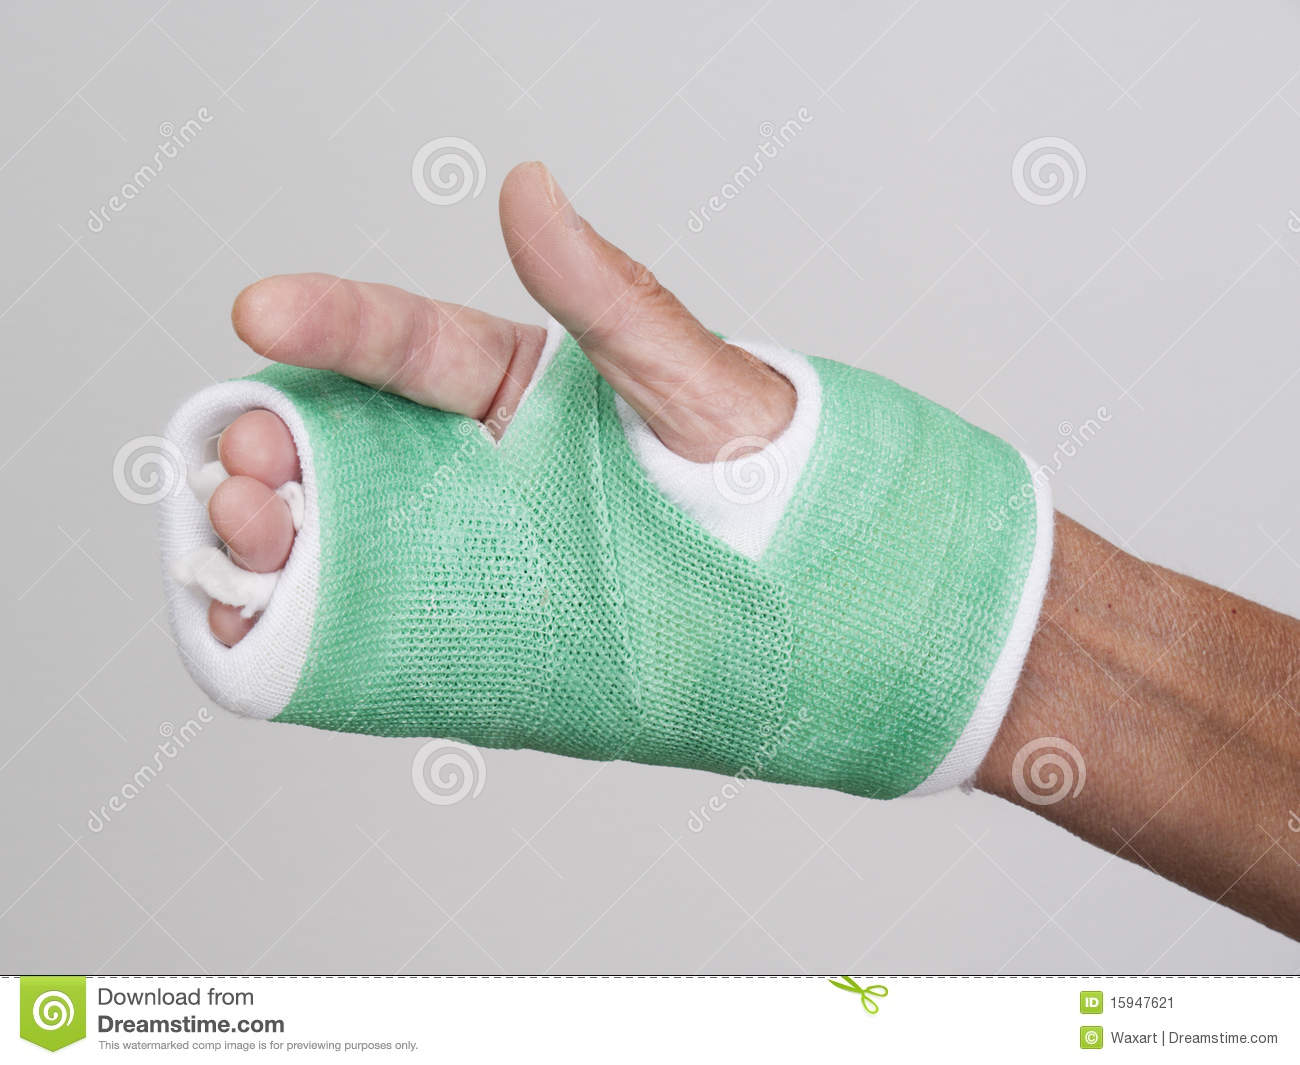 fingers of right hand in green cast stock image image of cast